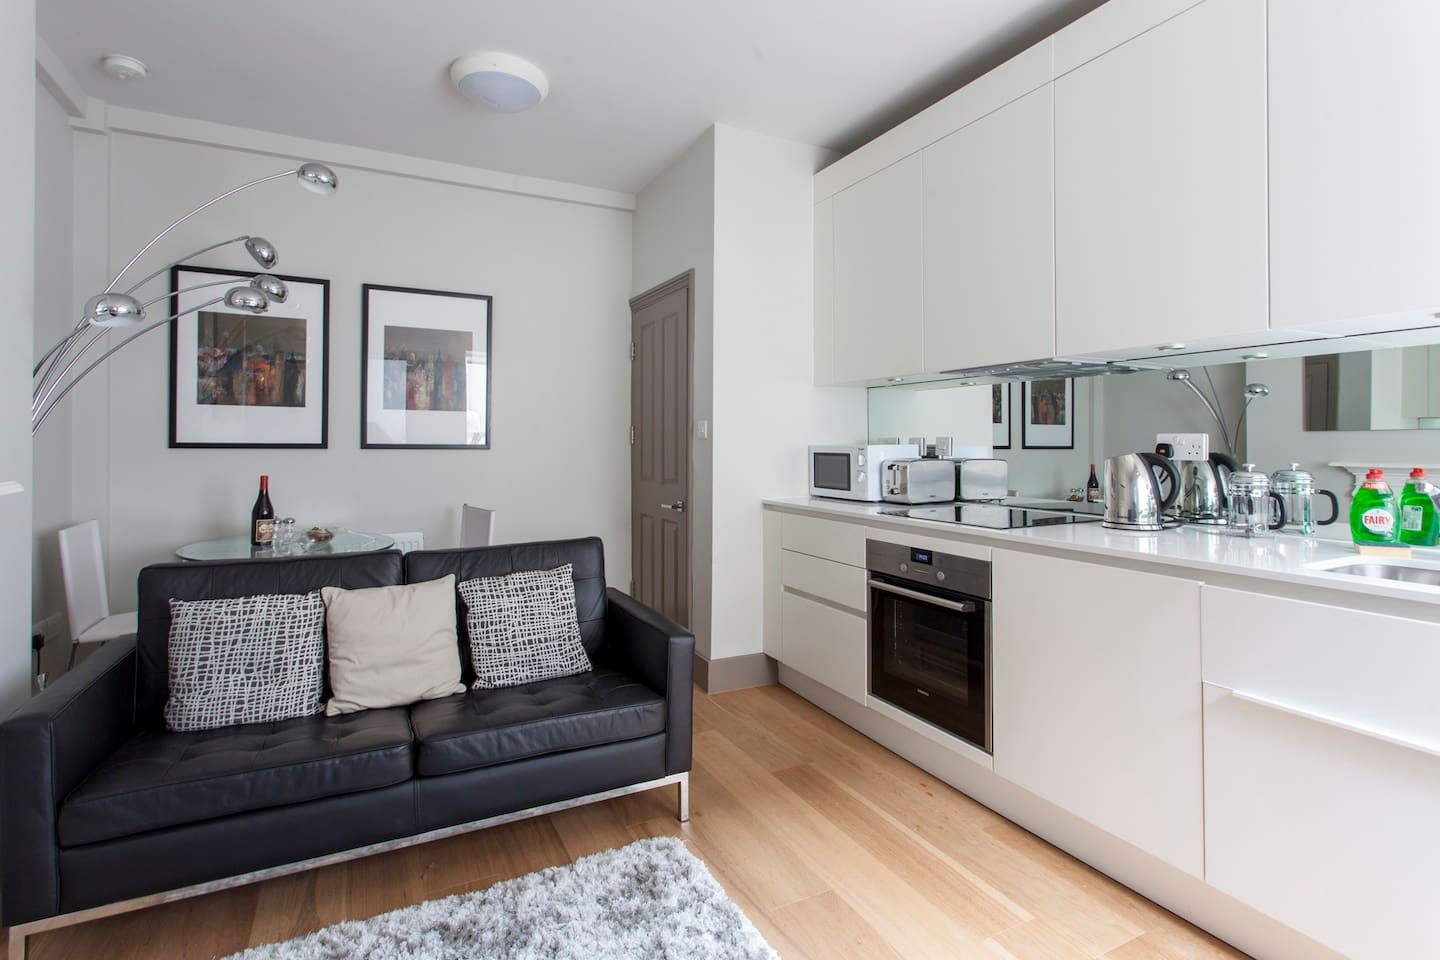 STUNNING ONE BED APT IN THE HEART OF OXFORD STREET